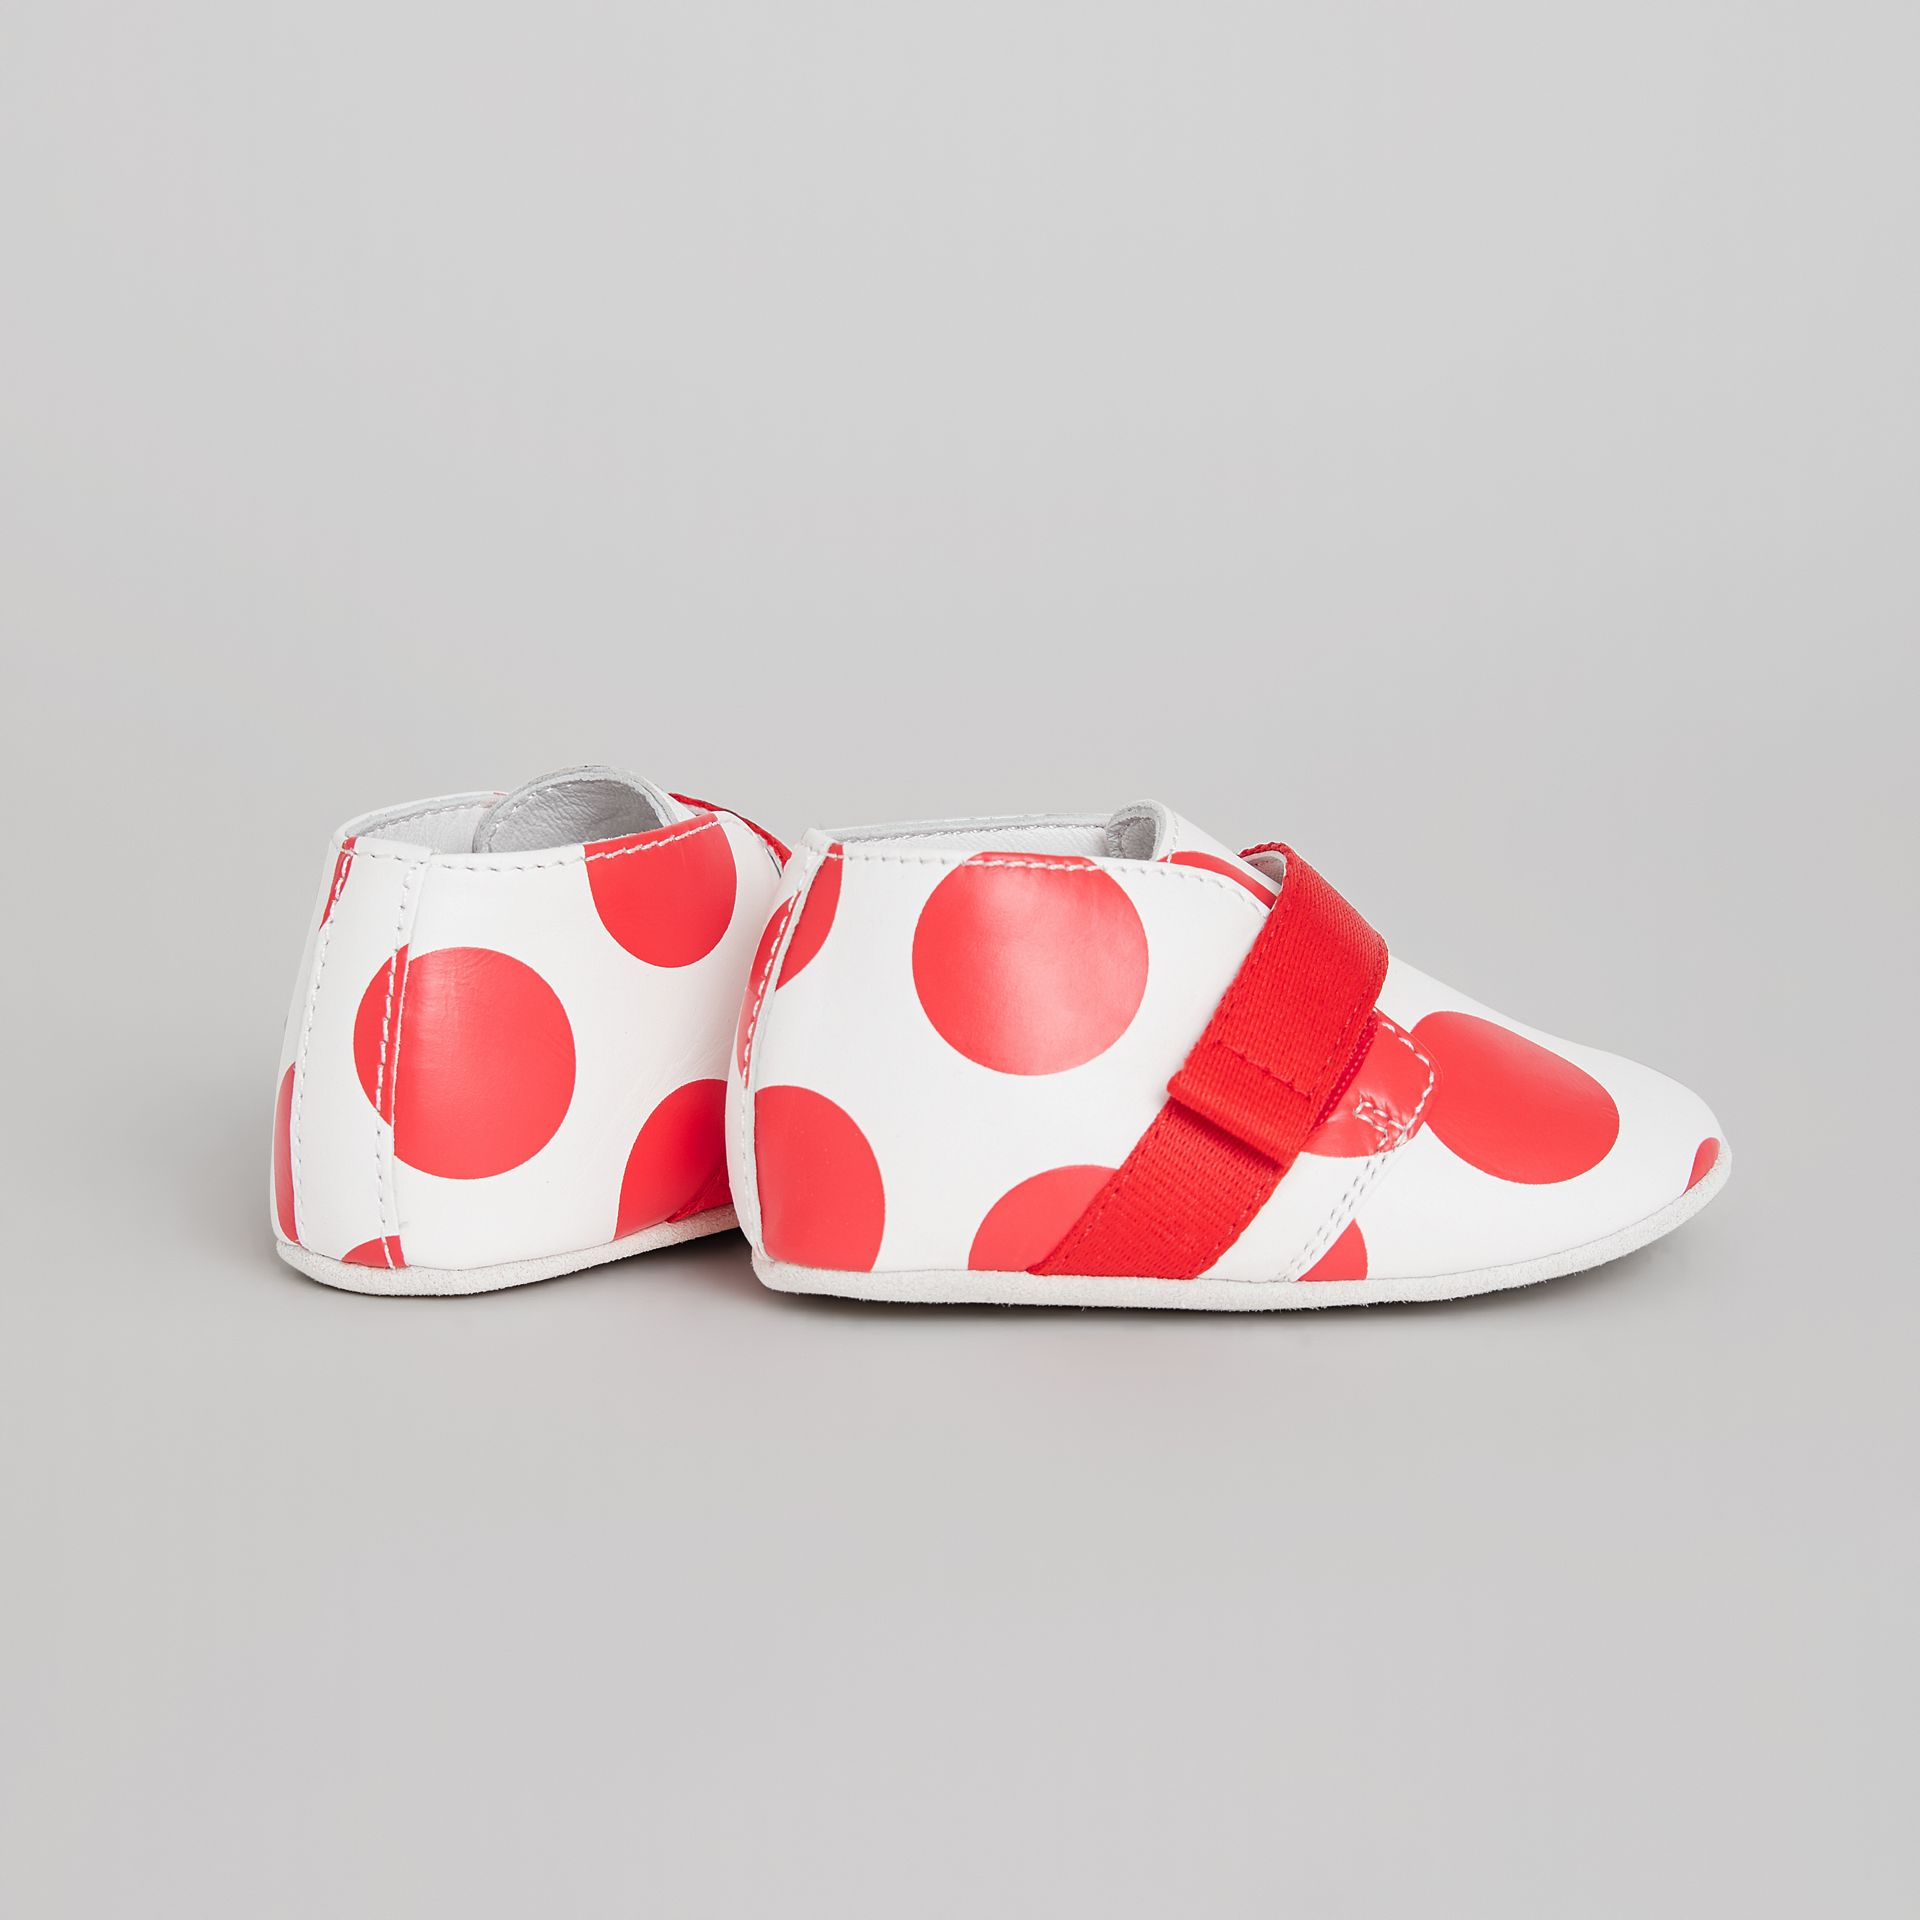 Spot Print Leather Shoes in Bright Red - Children | Burberry Australia - gallery image 2